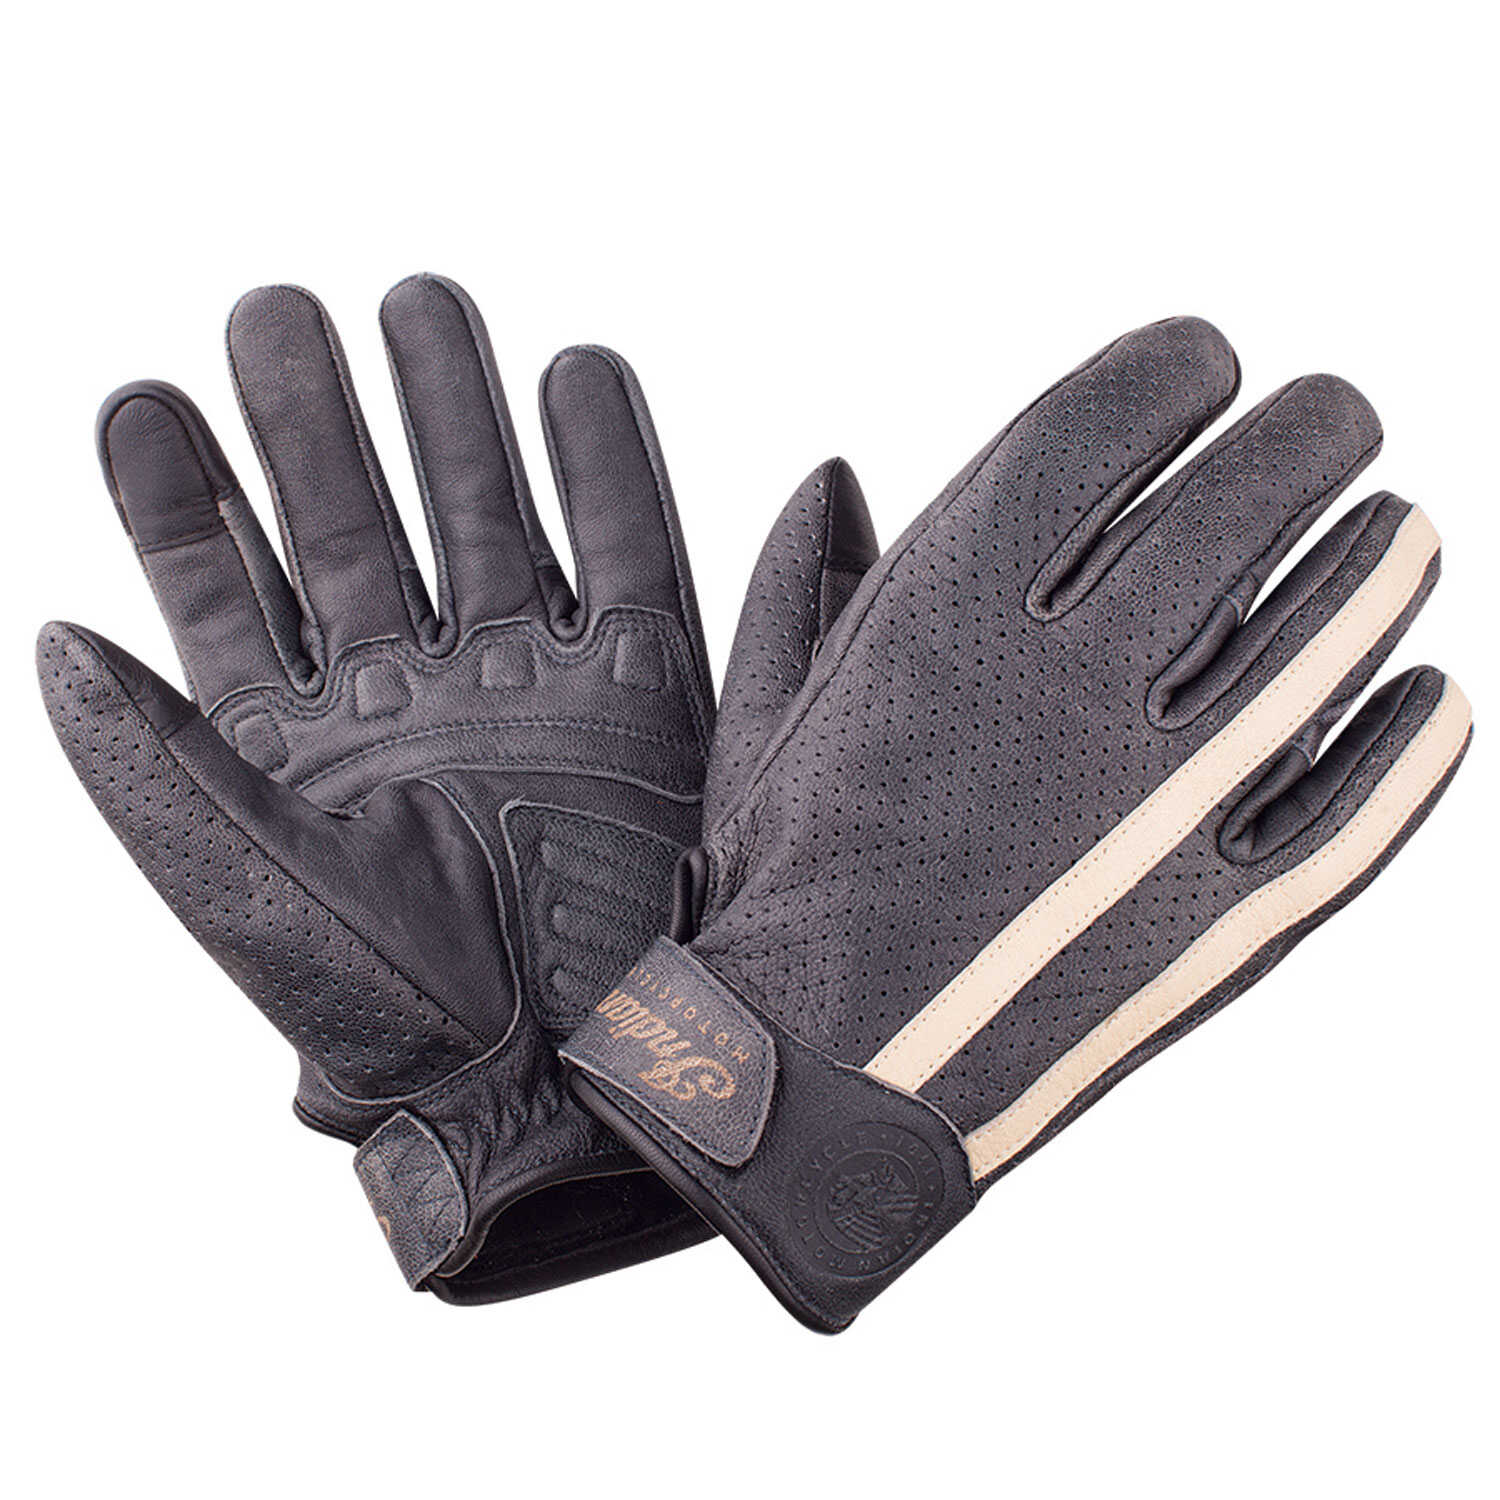 Ladies leather cycling gloves - Perforated Route Glove